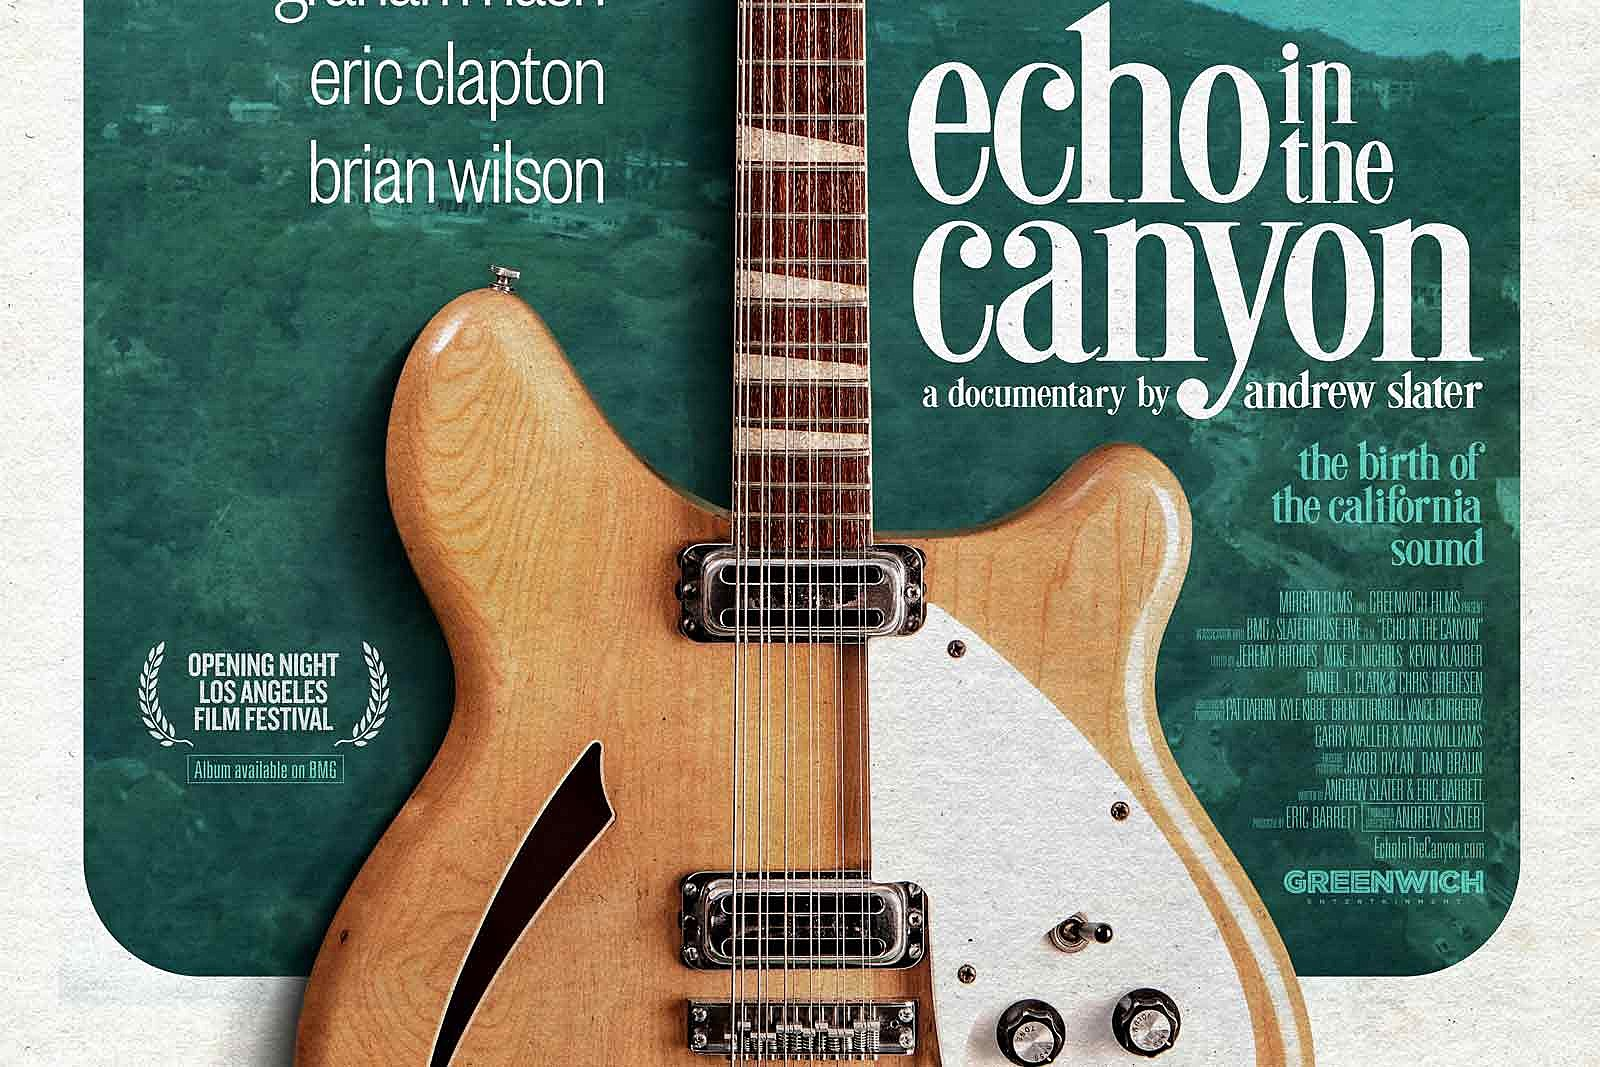 Neil Young, Others Cover Classics on 'Echo in Canyon' Soundtrack